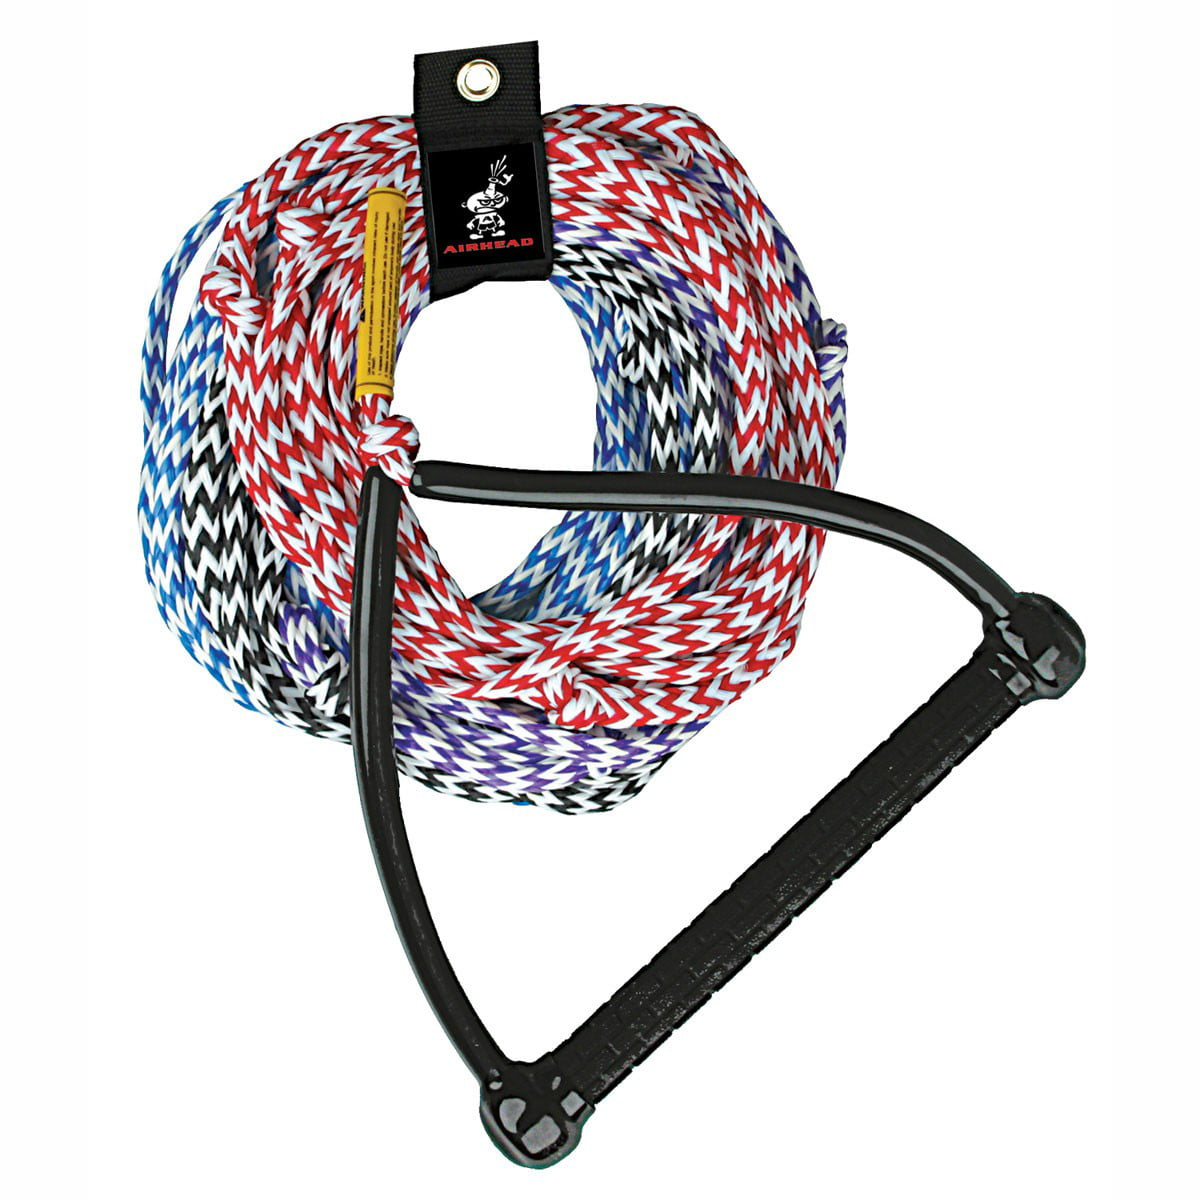 Water Ski Rope, 4-section by Kwik Tek, Inc